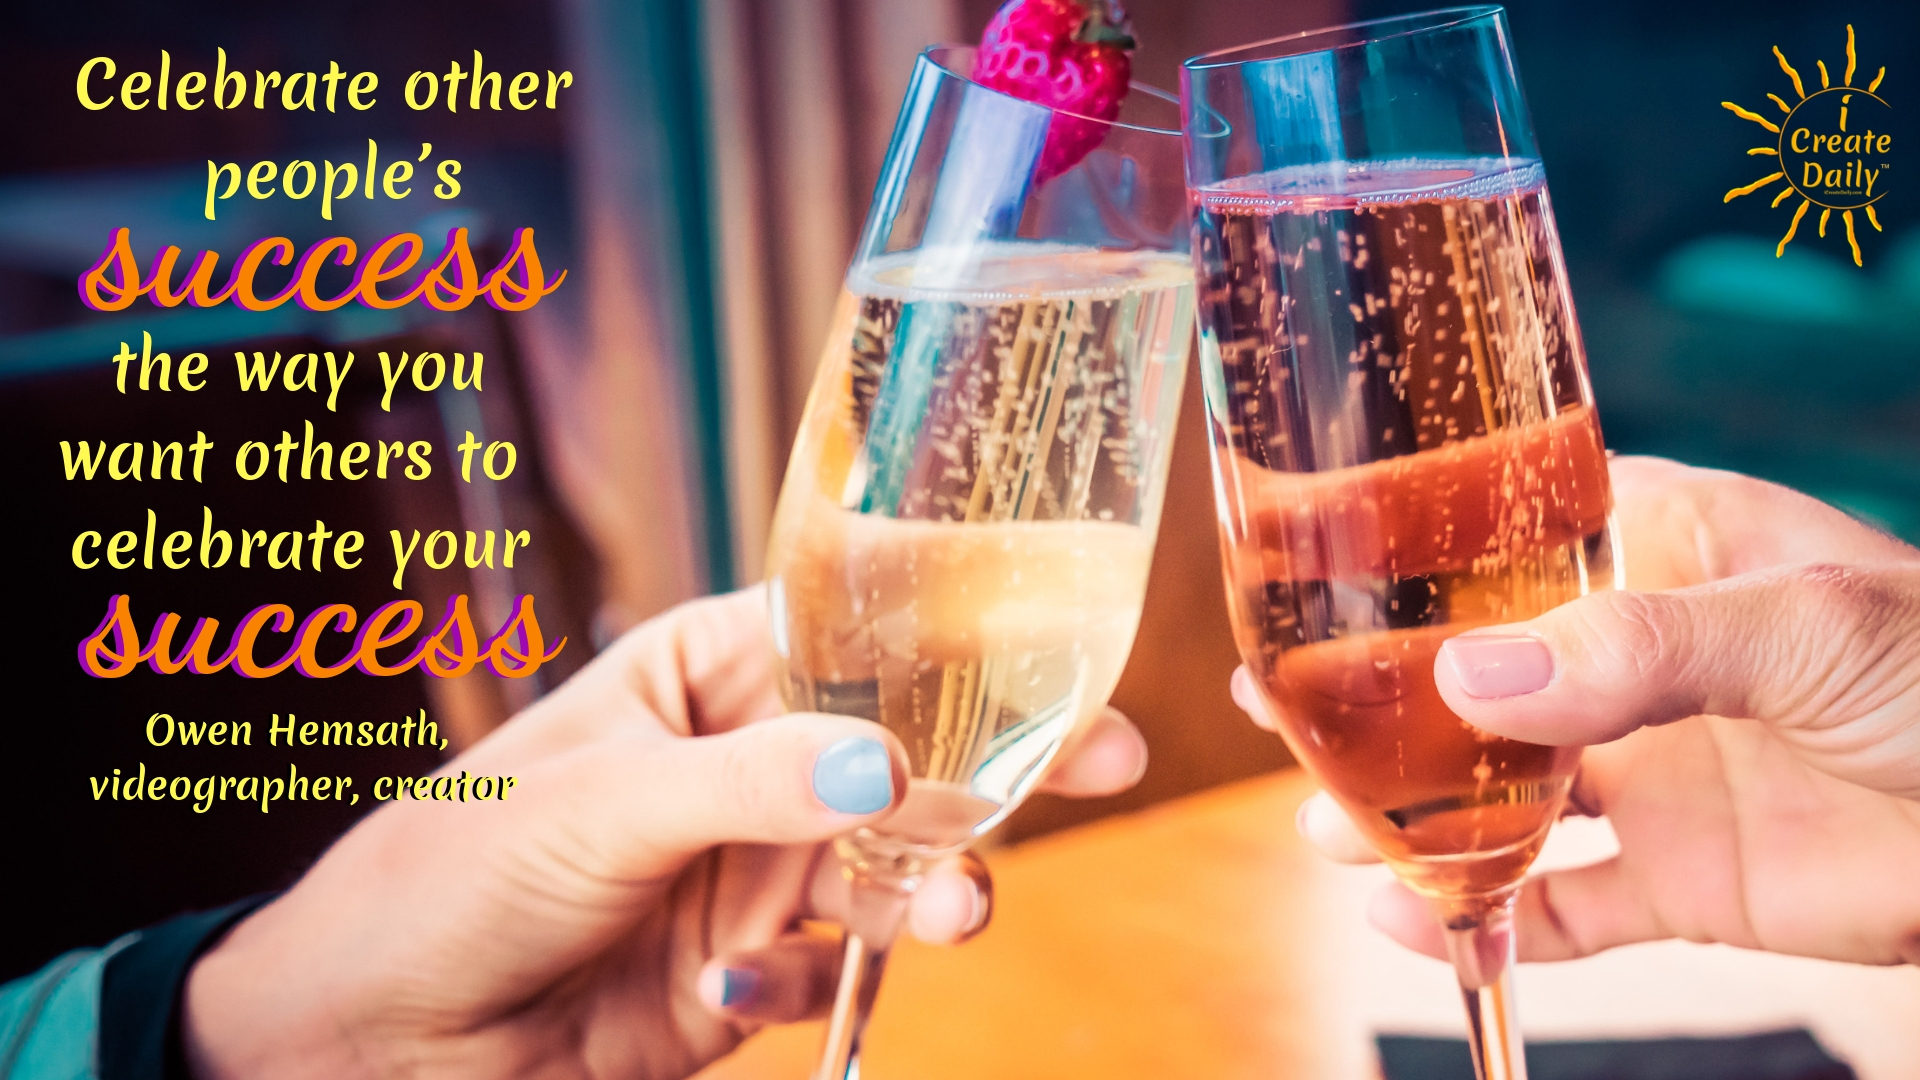 """Celebrate other people's success the way you want others to celebrate your success."" ~Owen Hemsath, videographer, creator, entrepreneur #lifegoals #Dreams #Motivation #BucketLists #Ideas #Quotes #Money #IWant #Happy #ThingsToDo #Inspiration #Thoughts #Travel #Adventure #Fun #Friends #Awesome #People #Families #Heavens #RoadTrips #Wanderlust #Mottos #icreatedaily"